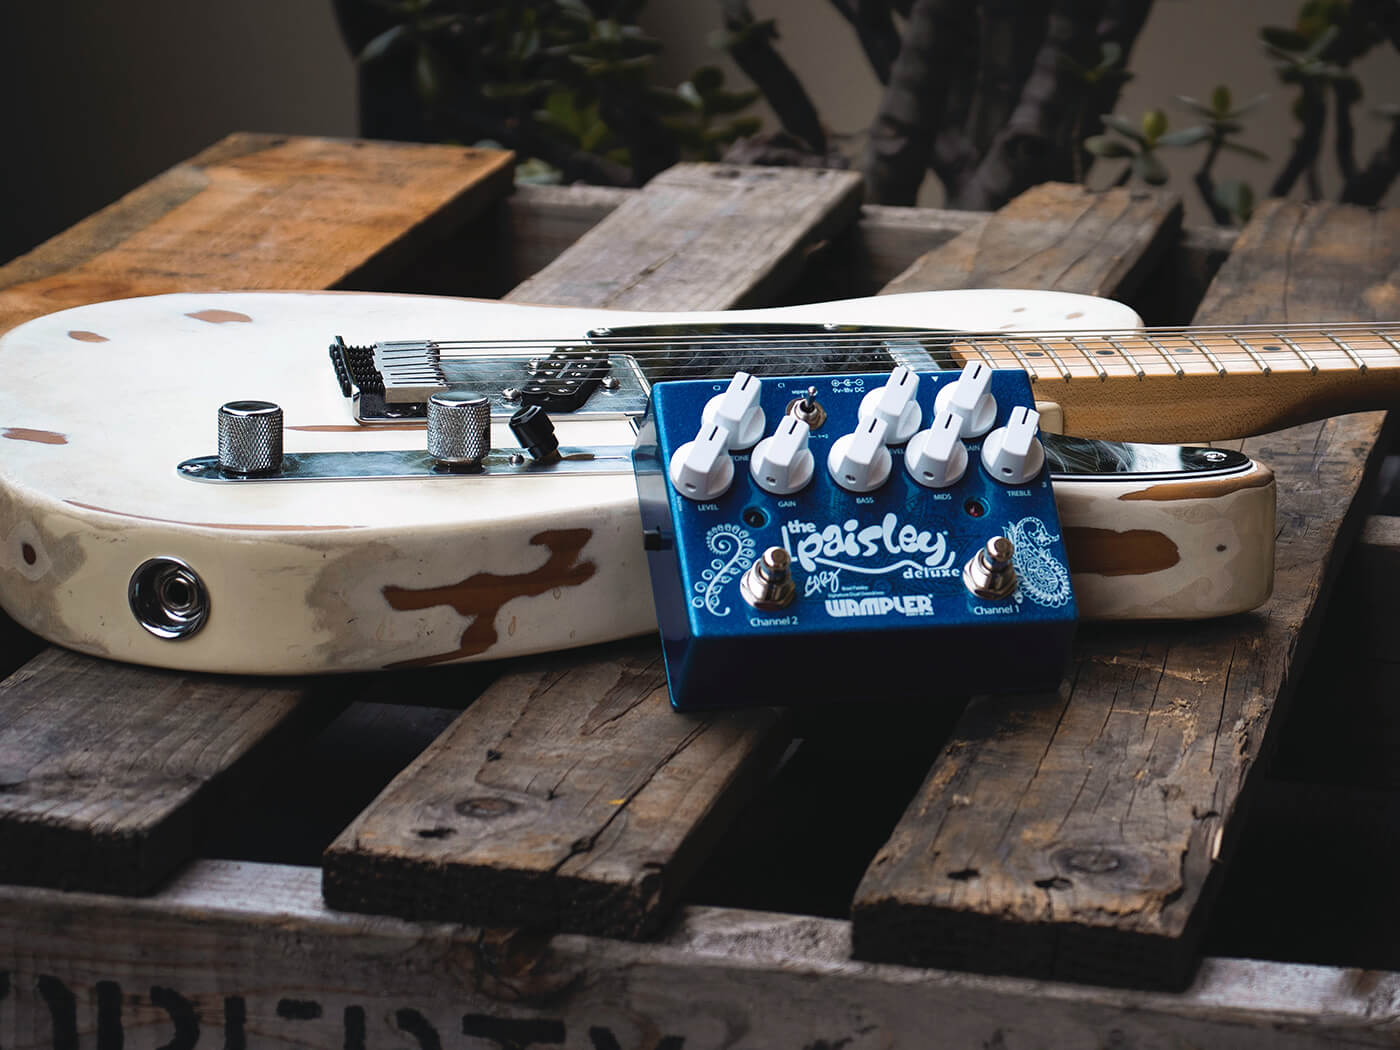 Brian Wampler of Wampler Pedals (Brad Paisley Pedal)